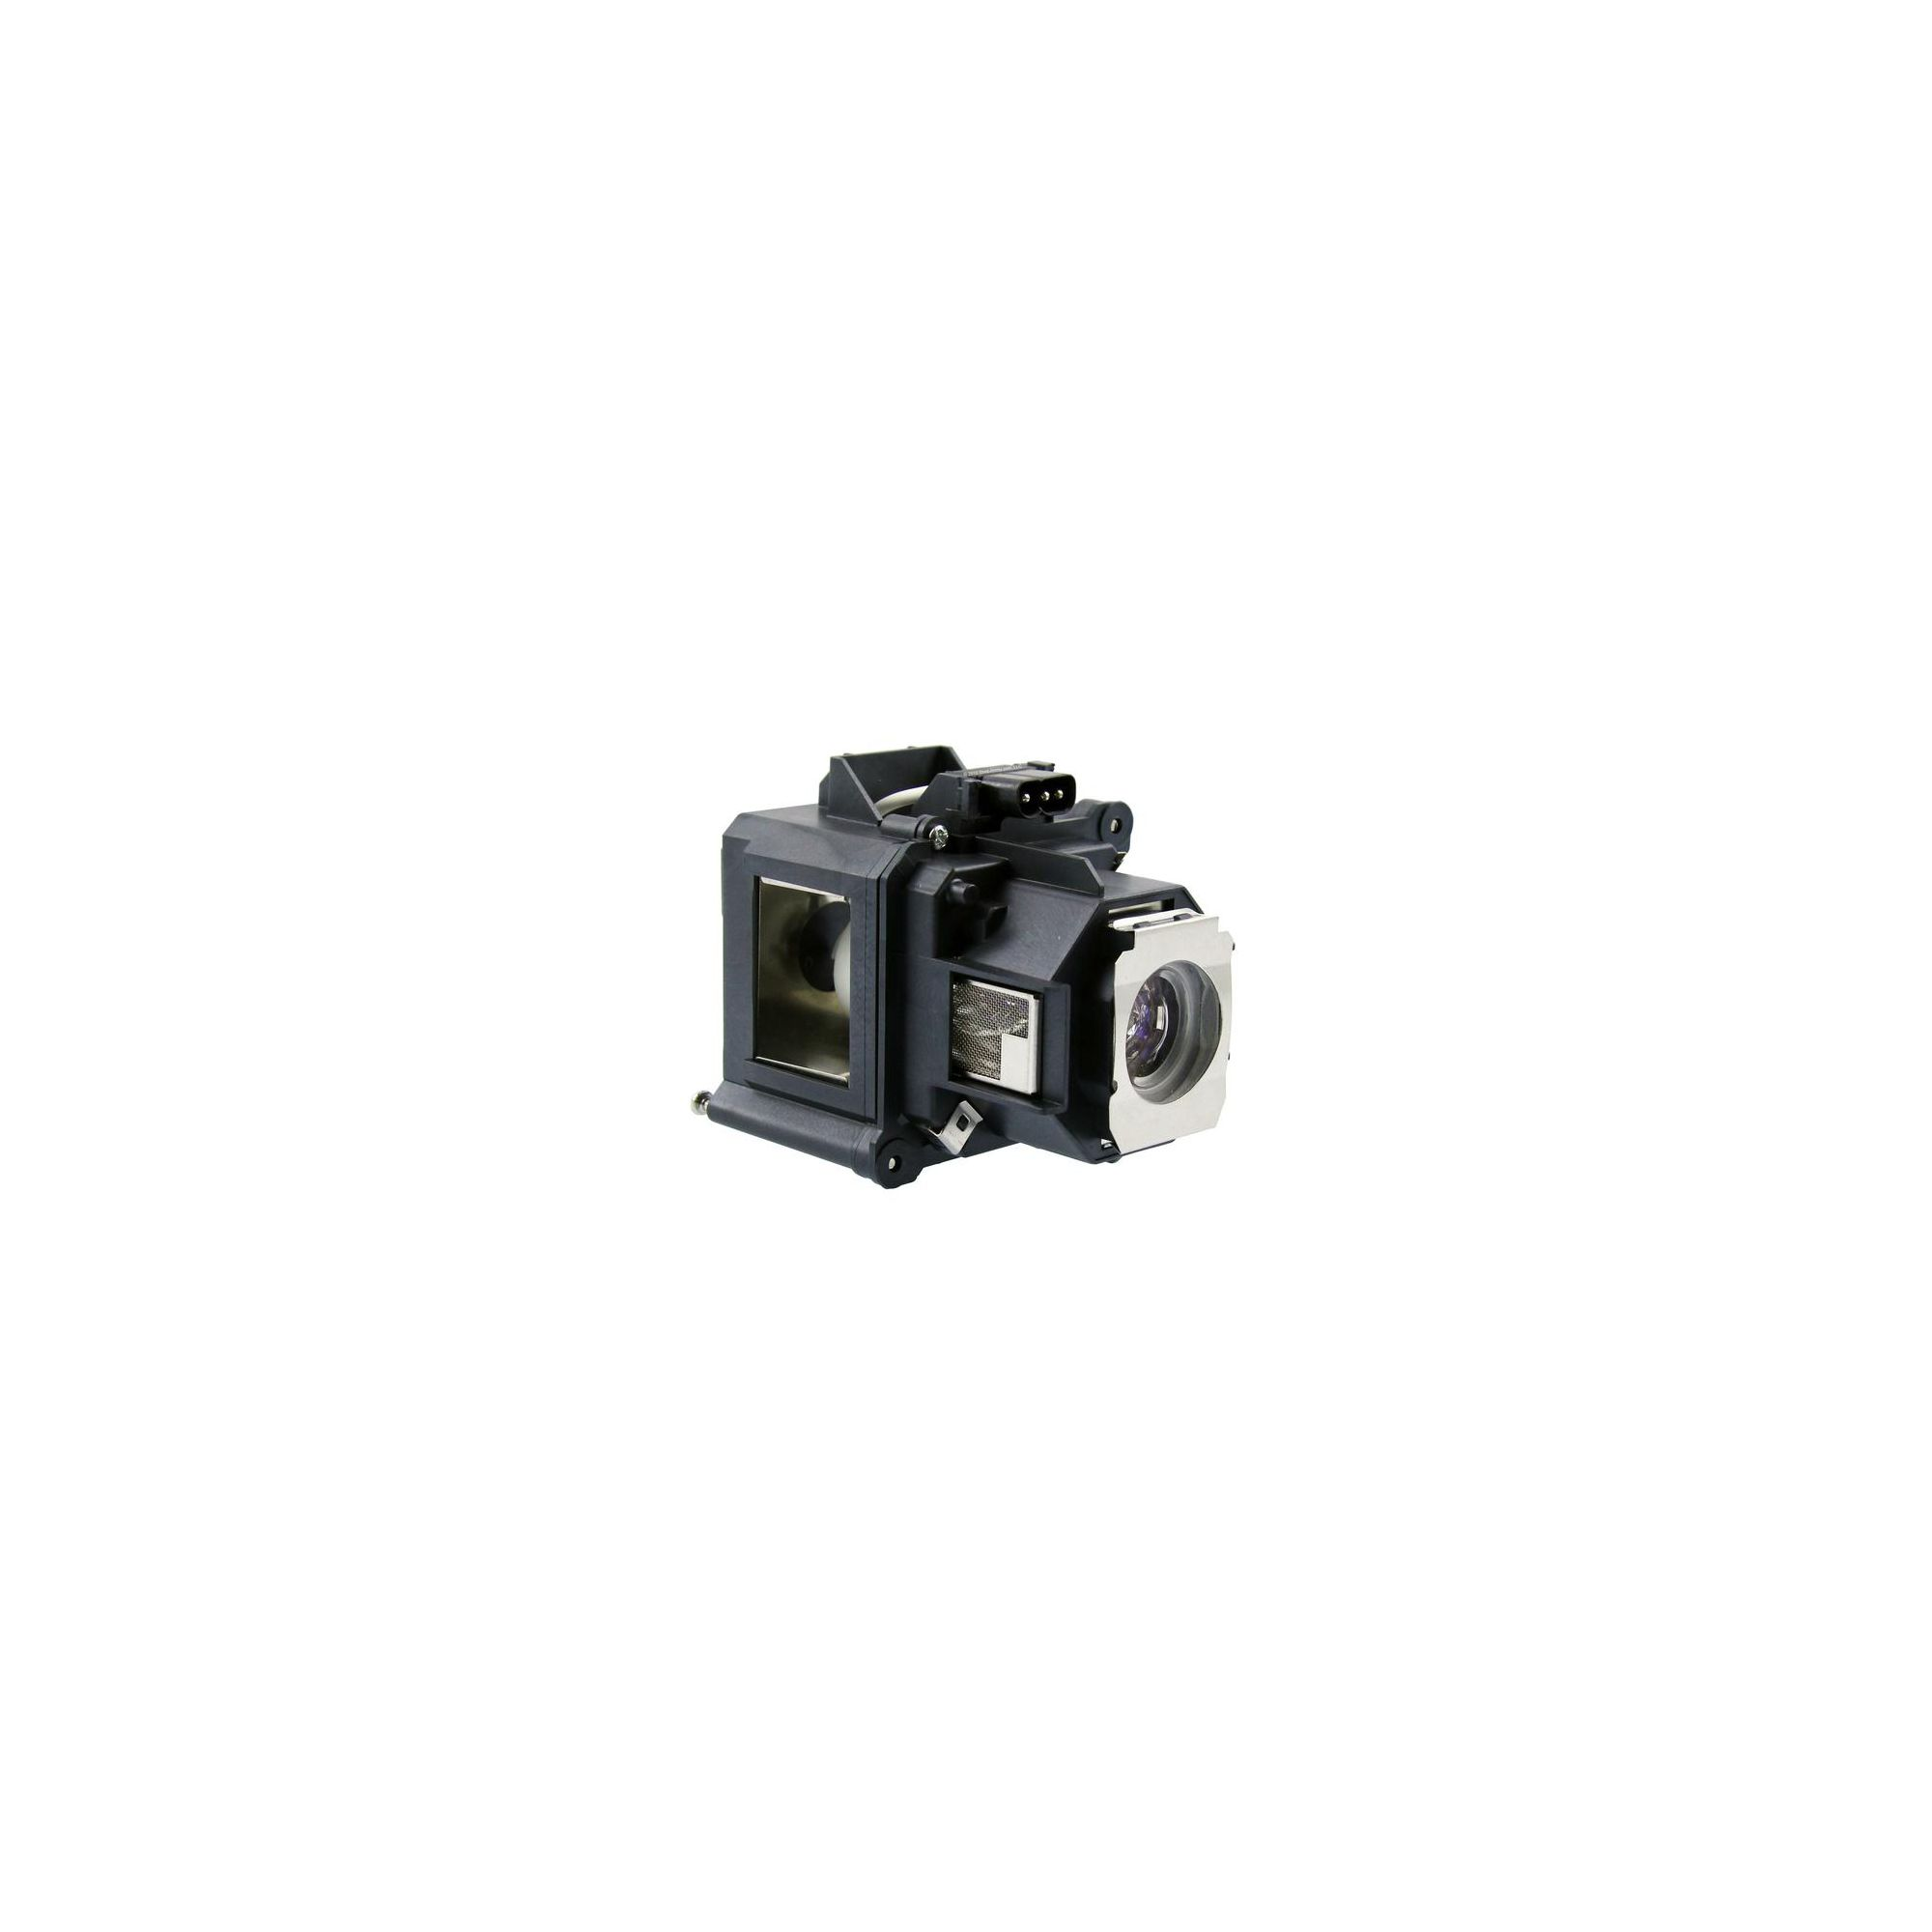 Epson Replacement Projector Lamp Module for EB-G5100, EB-G5150 Projectors at Tesco Direct